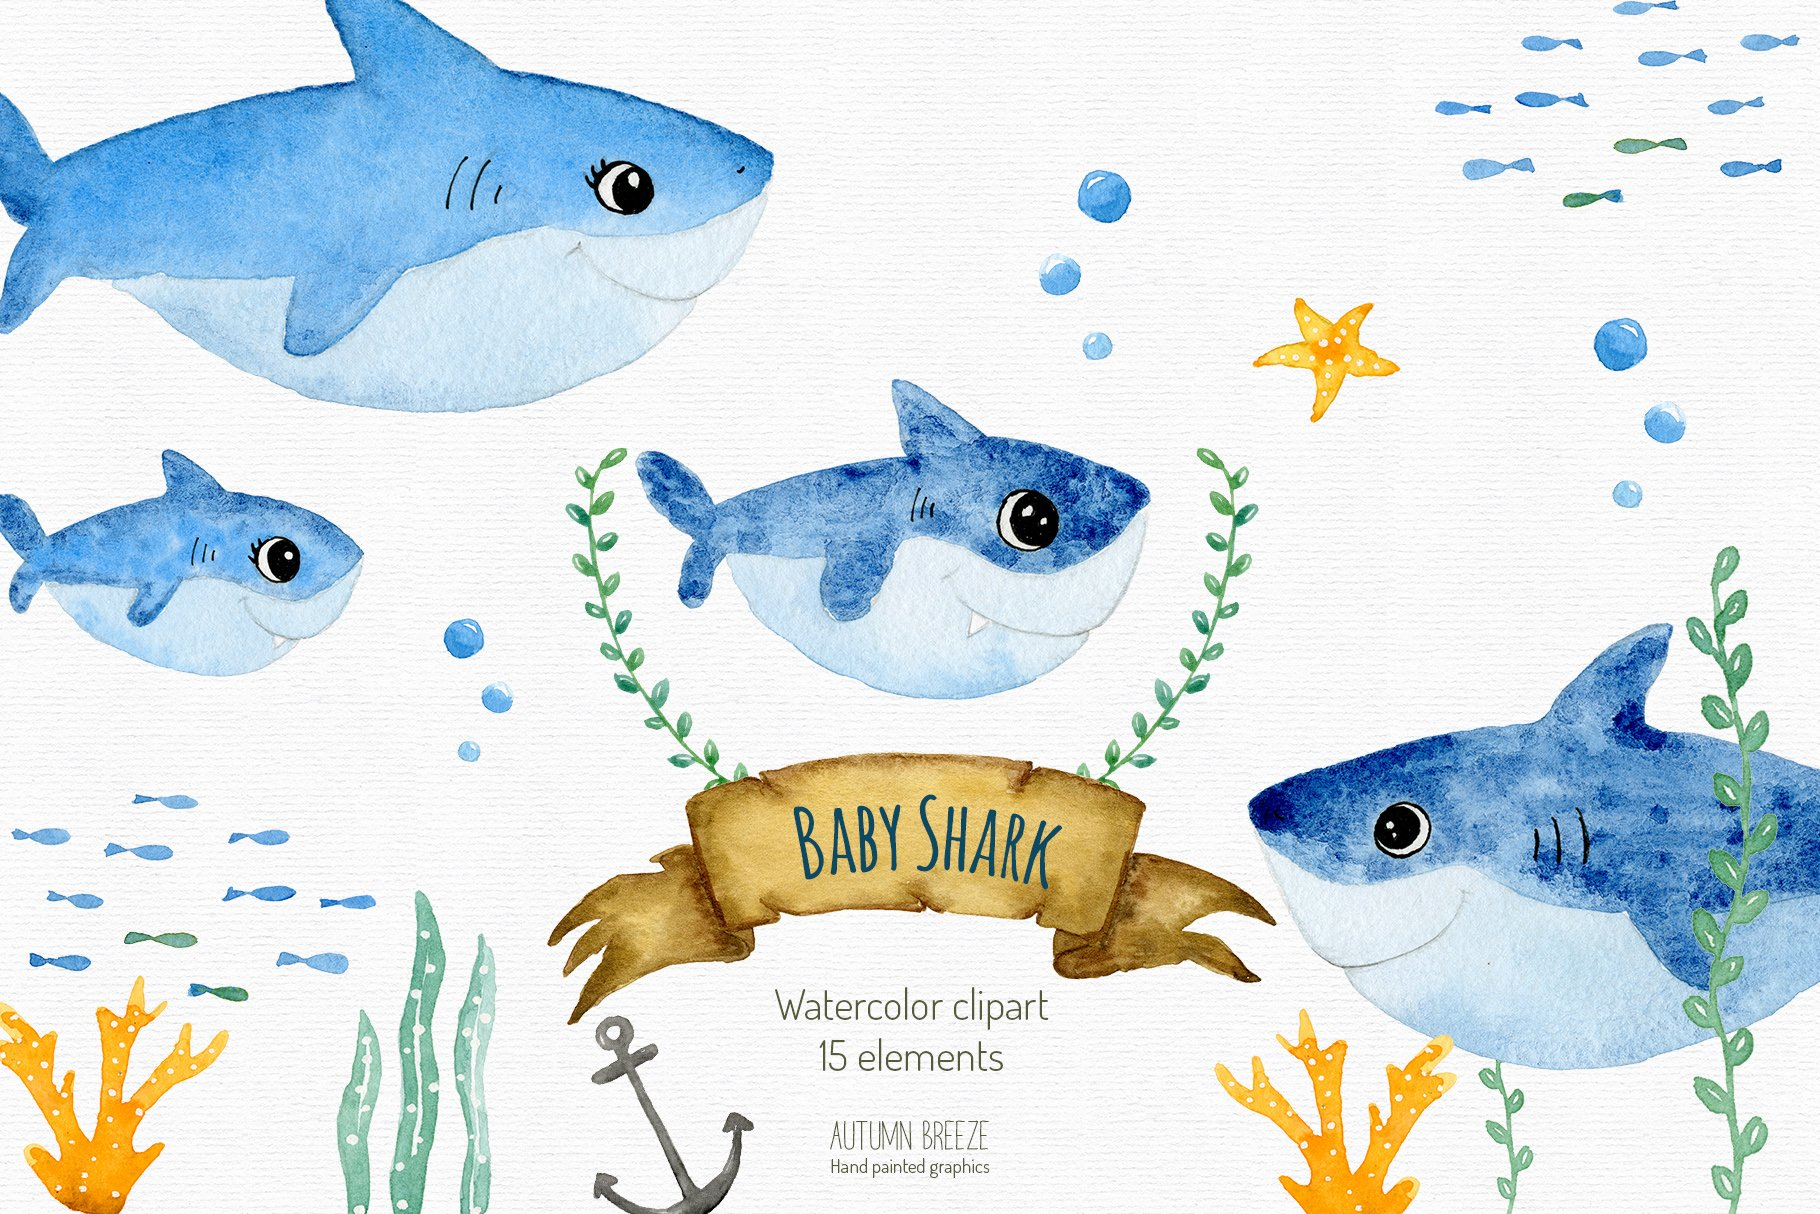 Baby Shark Clipart Pre Designed Photoshop Graphics Creative Market Baby shark png you can download 41 free baby shark png images. baby shark clipart